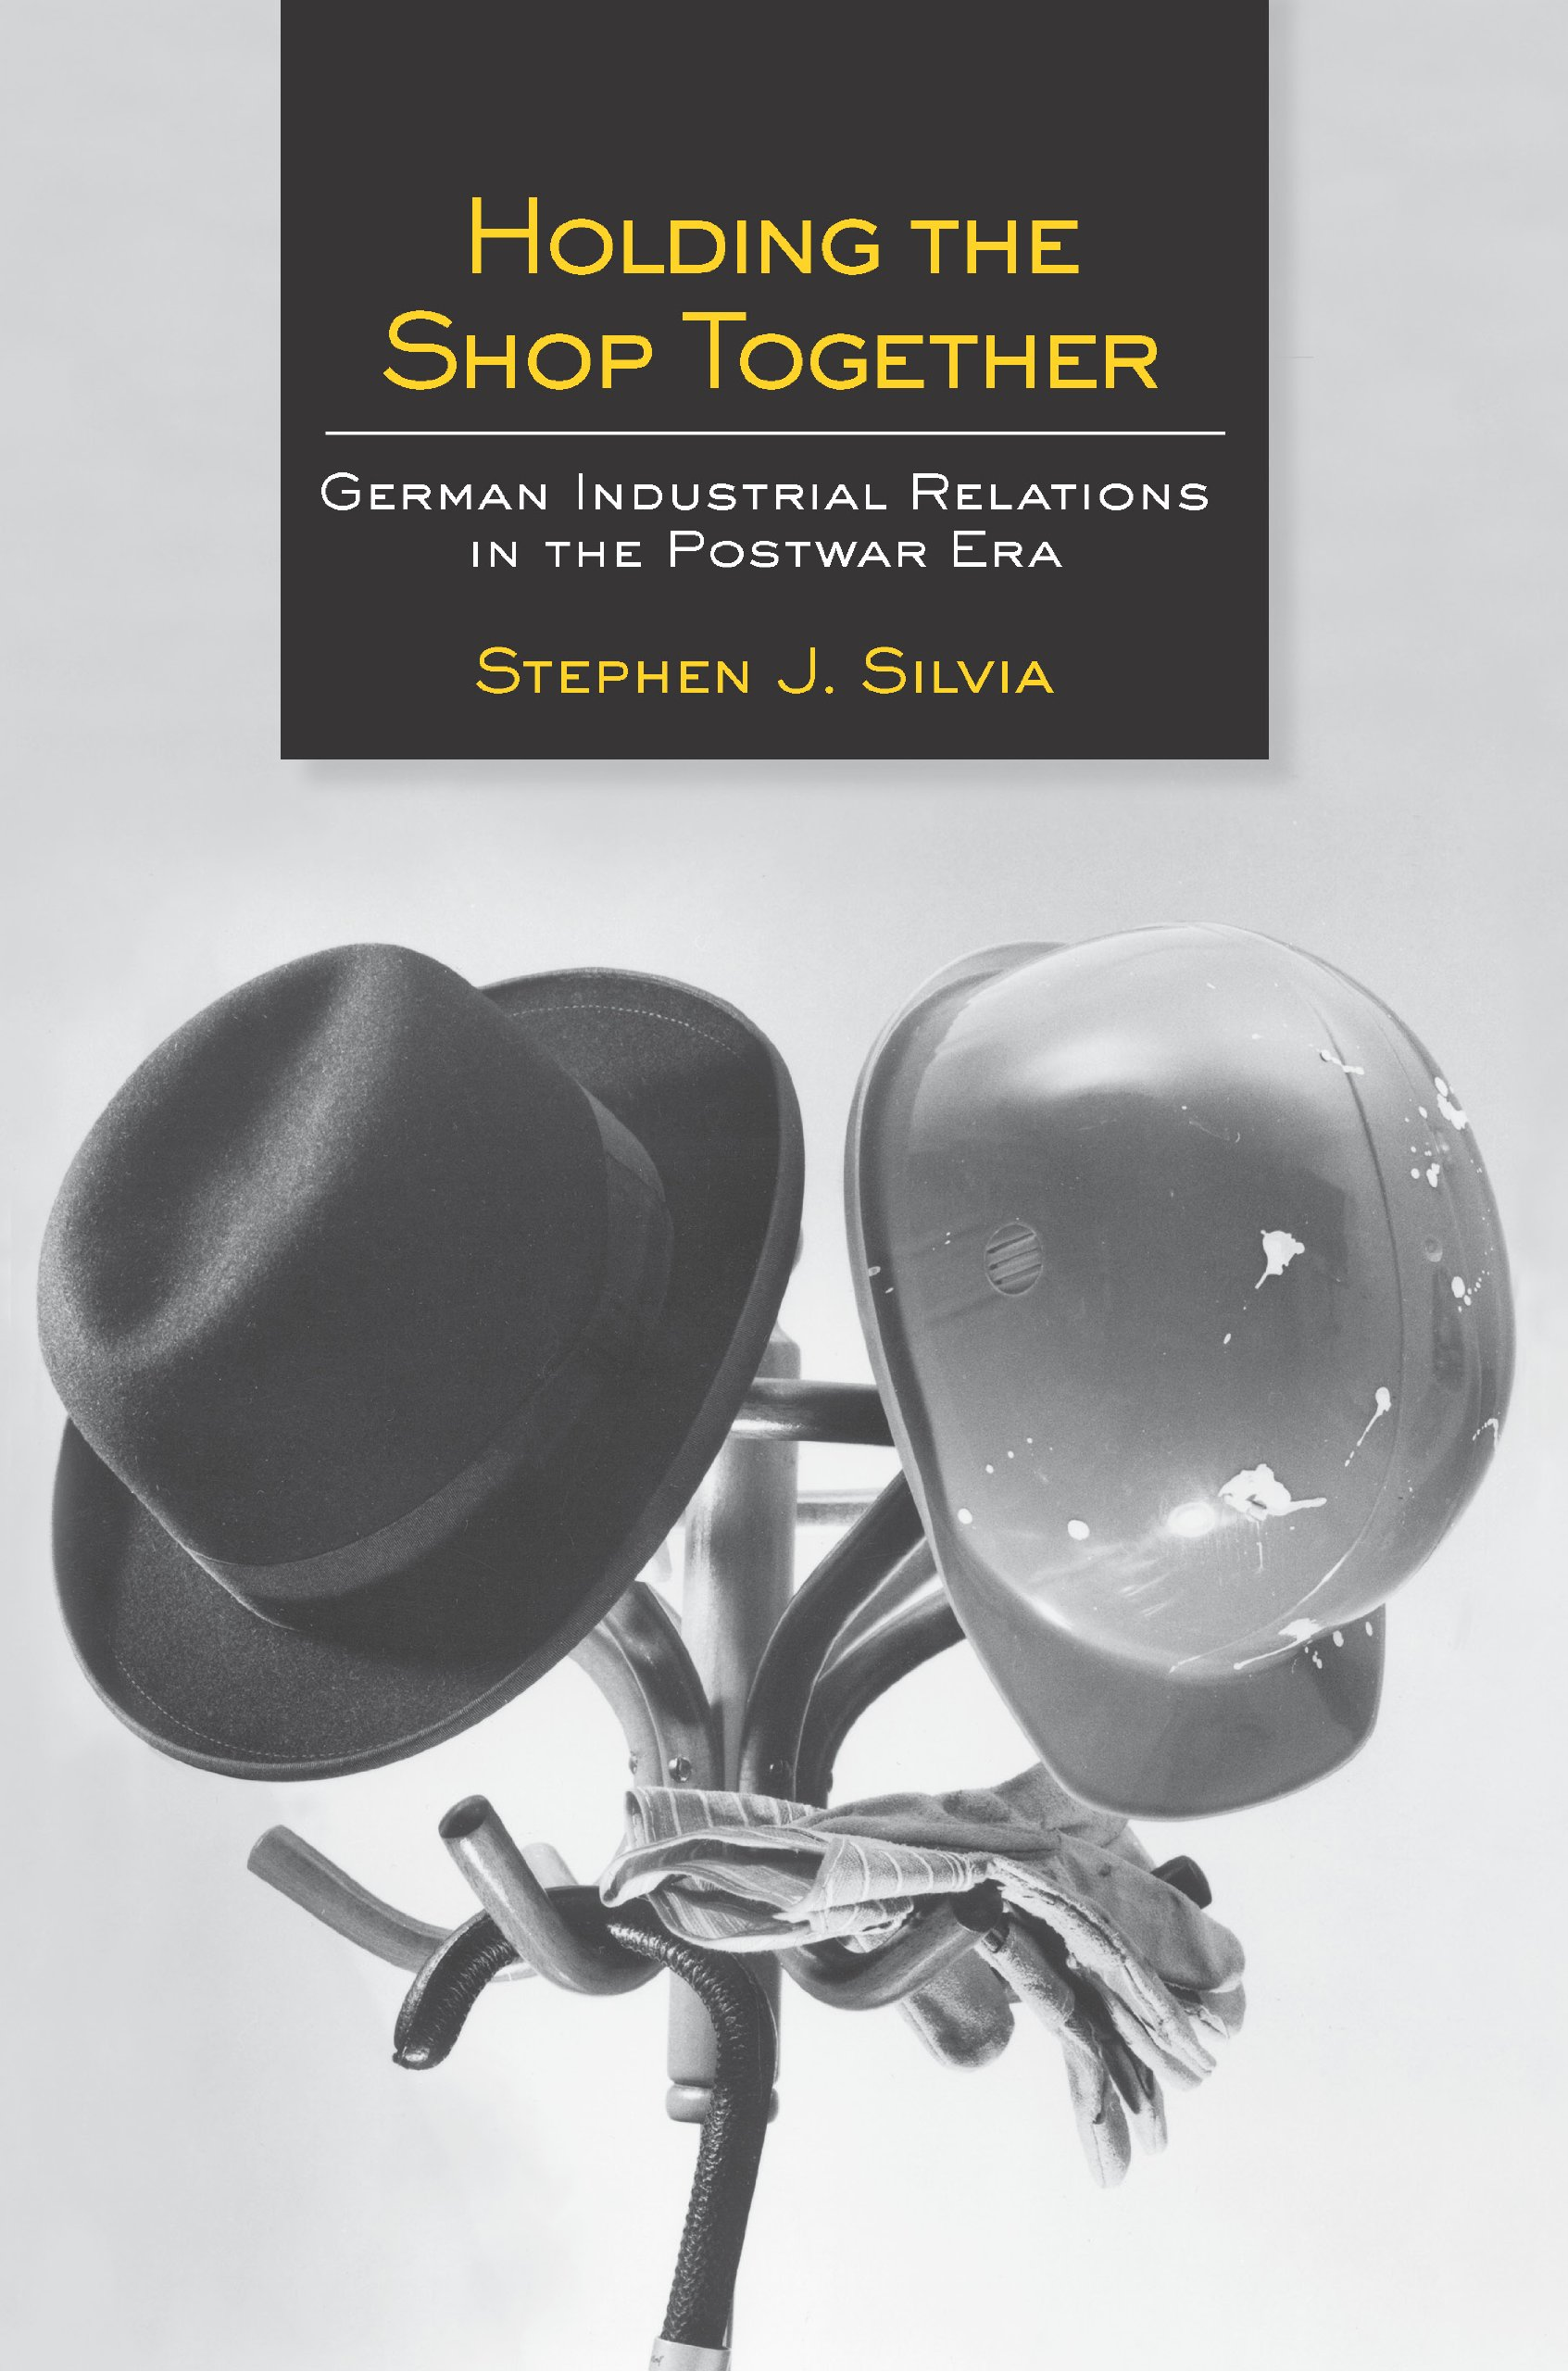 Holding the Shop Together: German Industrial Relations in the Postwar Era